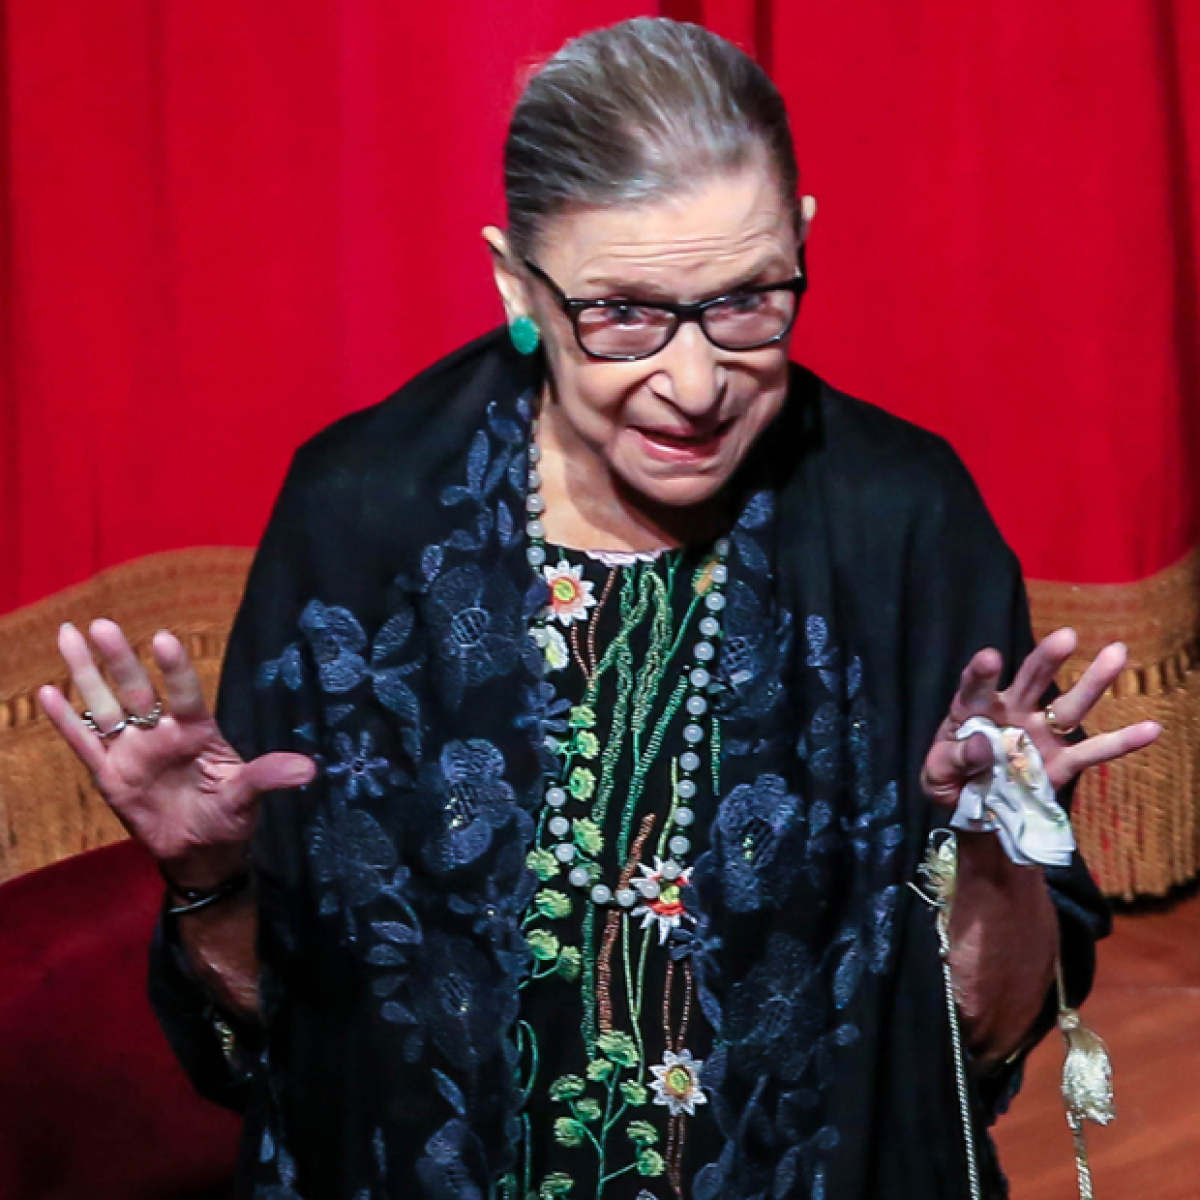 Remembering Justice Ruth Bader Ginsburg as a Patron of the Arts